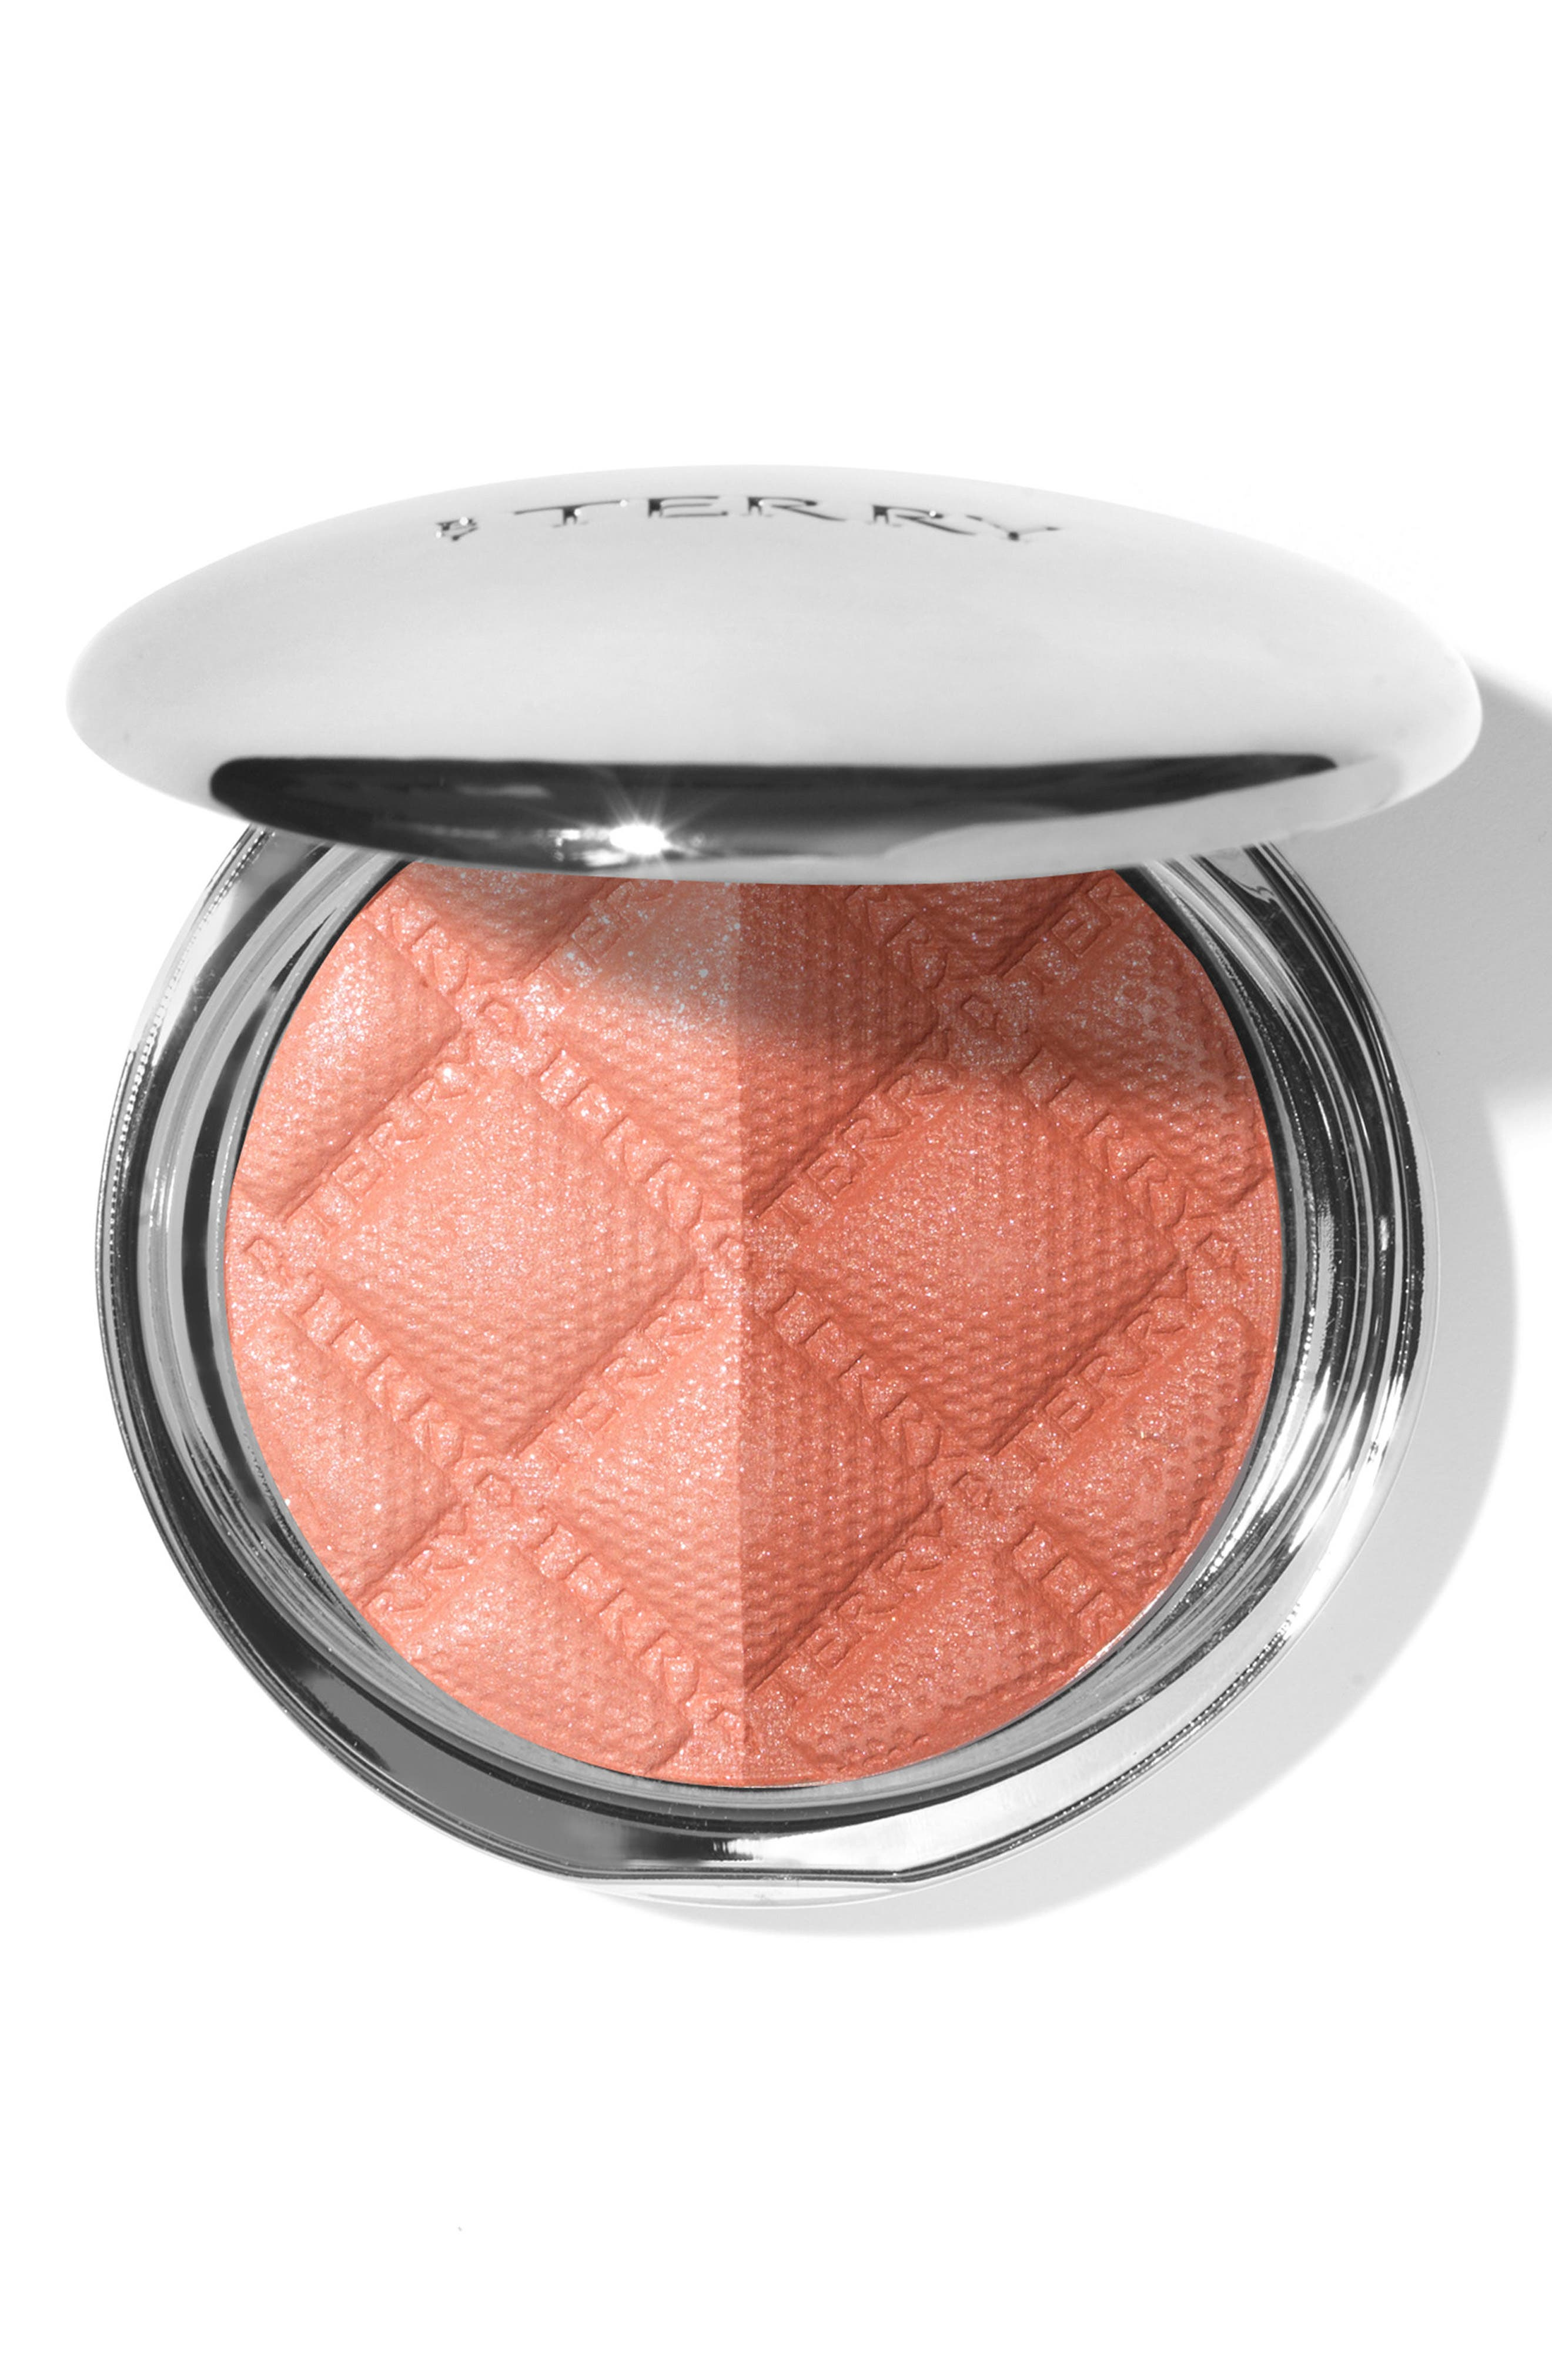 SPACE.NK.apothecary By Terry Terrybly Densiliss<sup>®</sup> Blush Contouring Compact,                             Main thumbnail 1, color,                             300 Peachy Sculpt